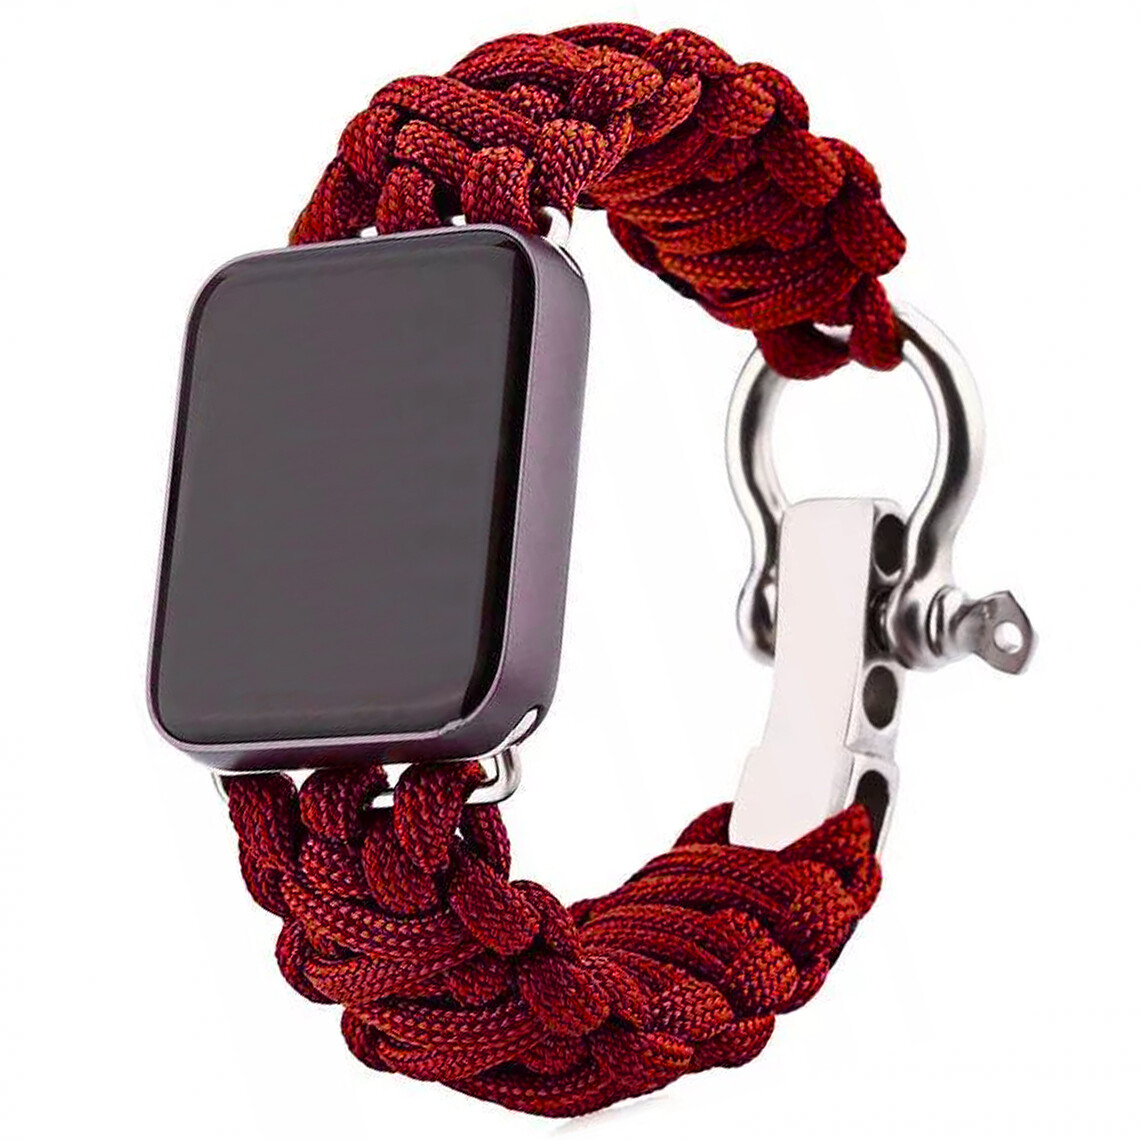 Nylon Woven Survival Strap for Apple Watch - Red